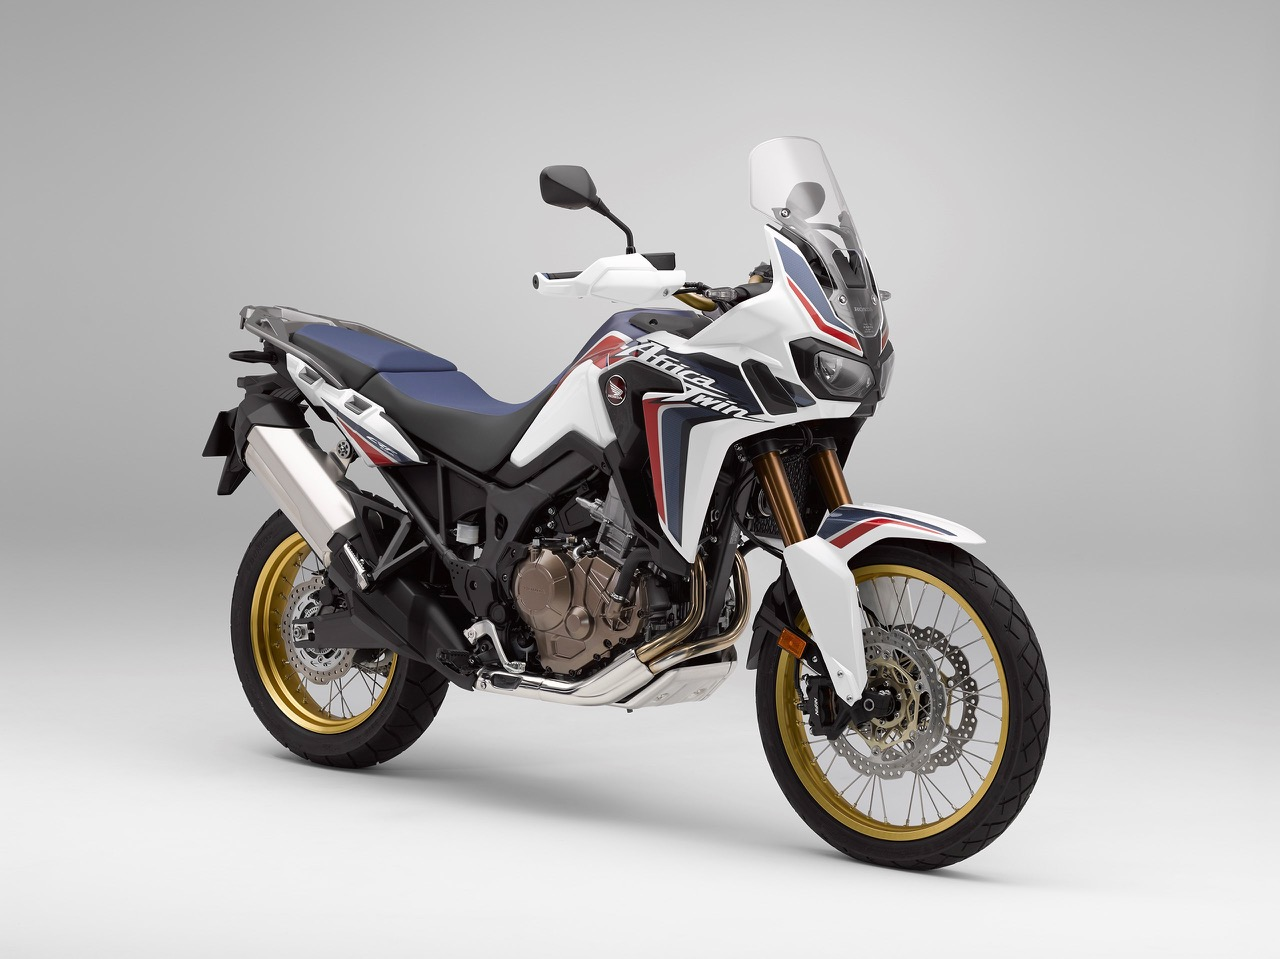 2018 honda africa twin pricing announced australasian. Black Bedroom Furniture Sets. Home Design Ideas